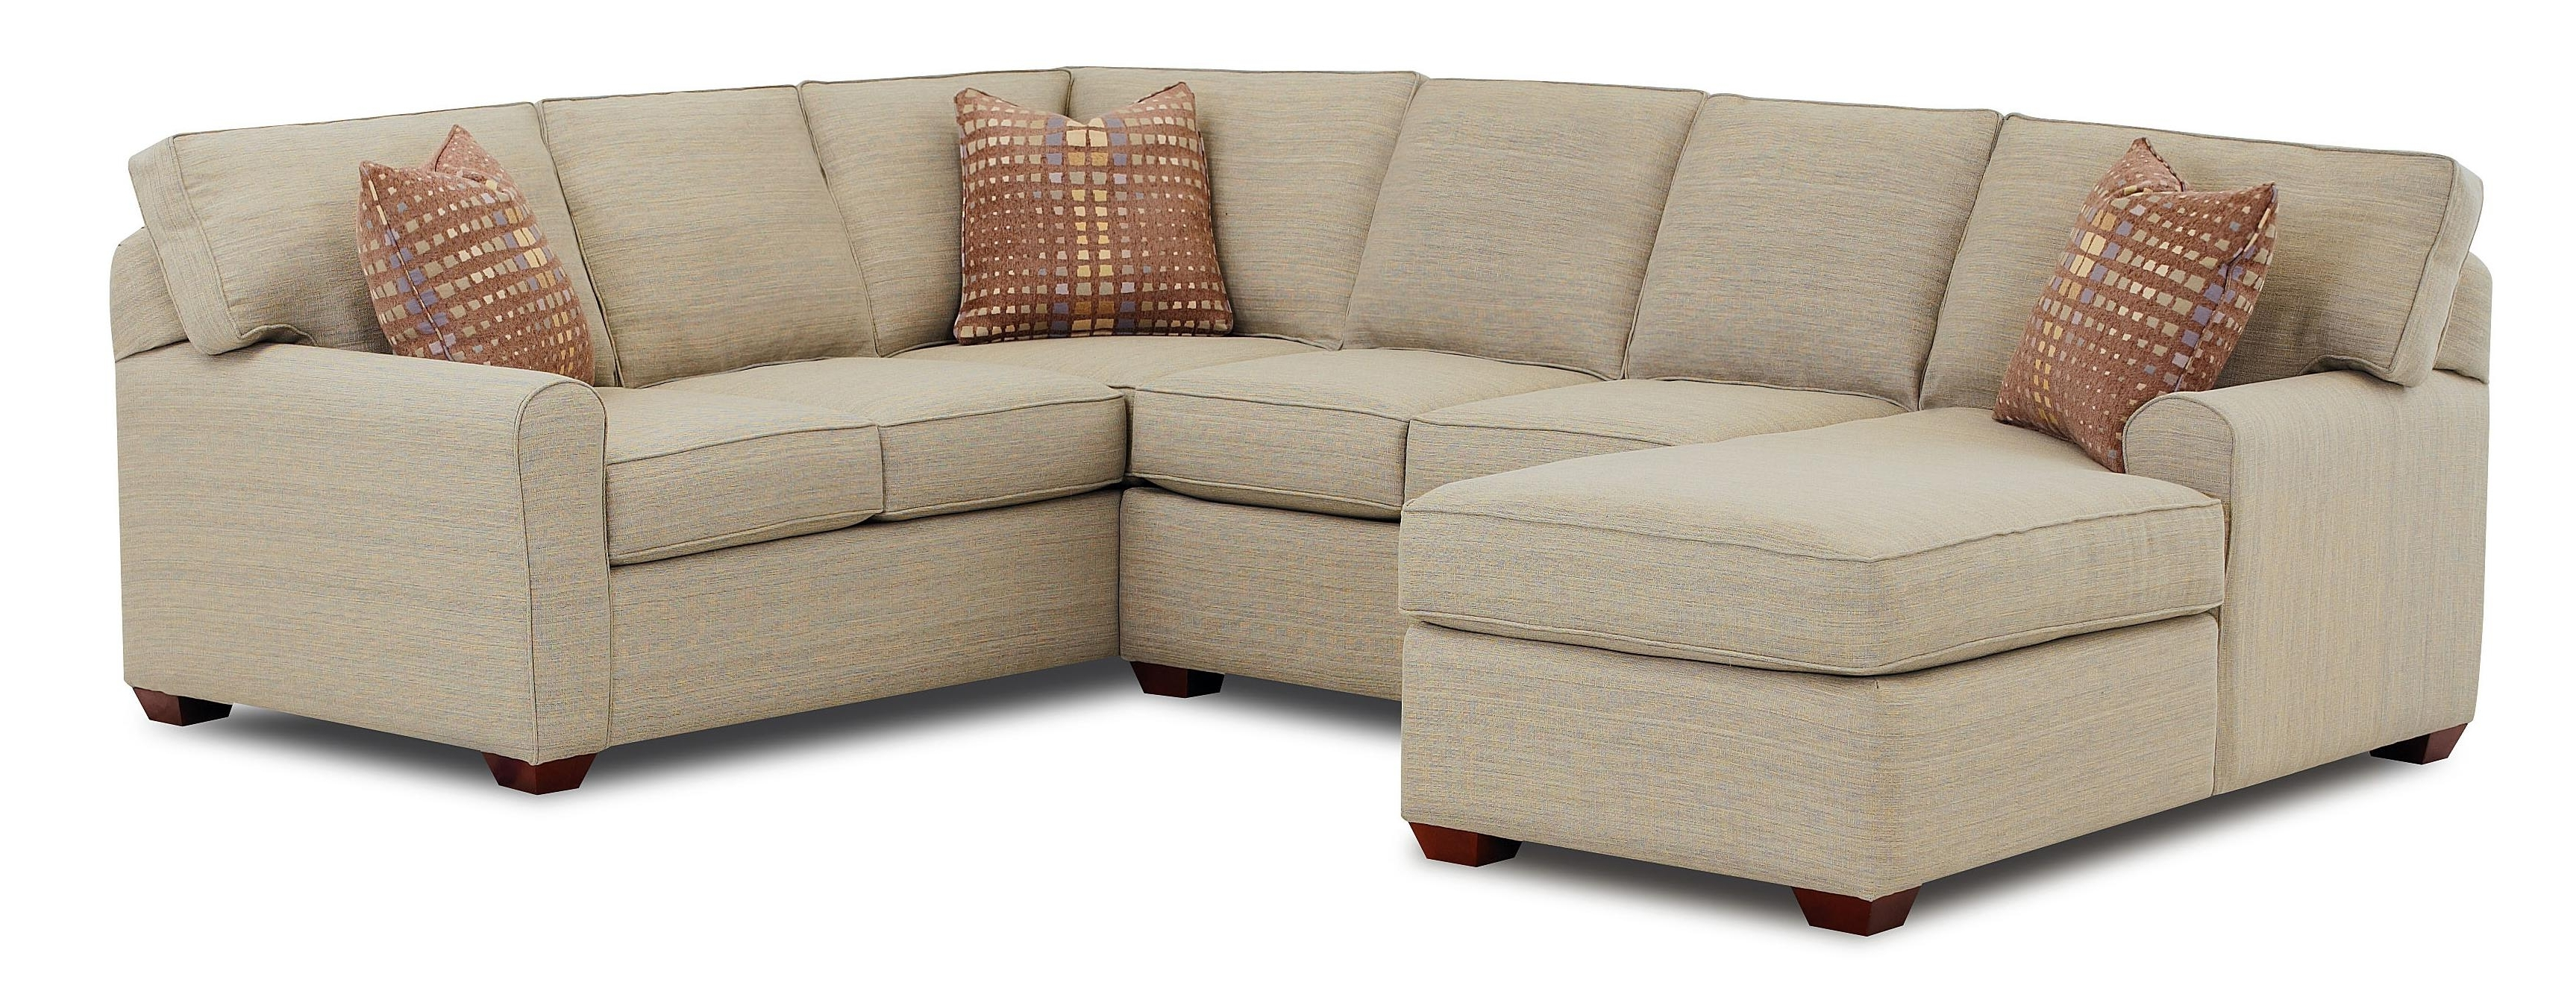 Sectional Chaise Sofas In 2018 Sectional Sofa With Left Facing Chaise Loungeklaussner (View 8 of 15)